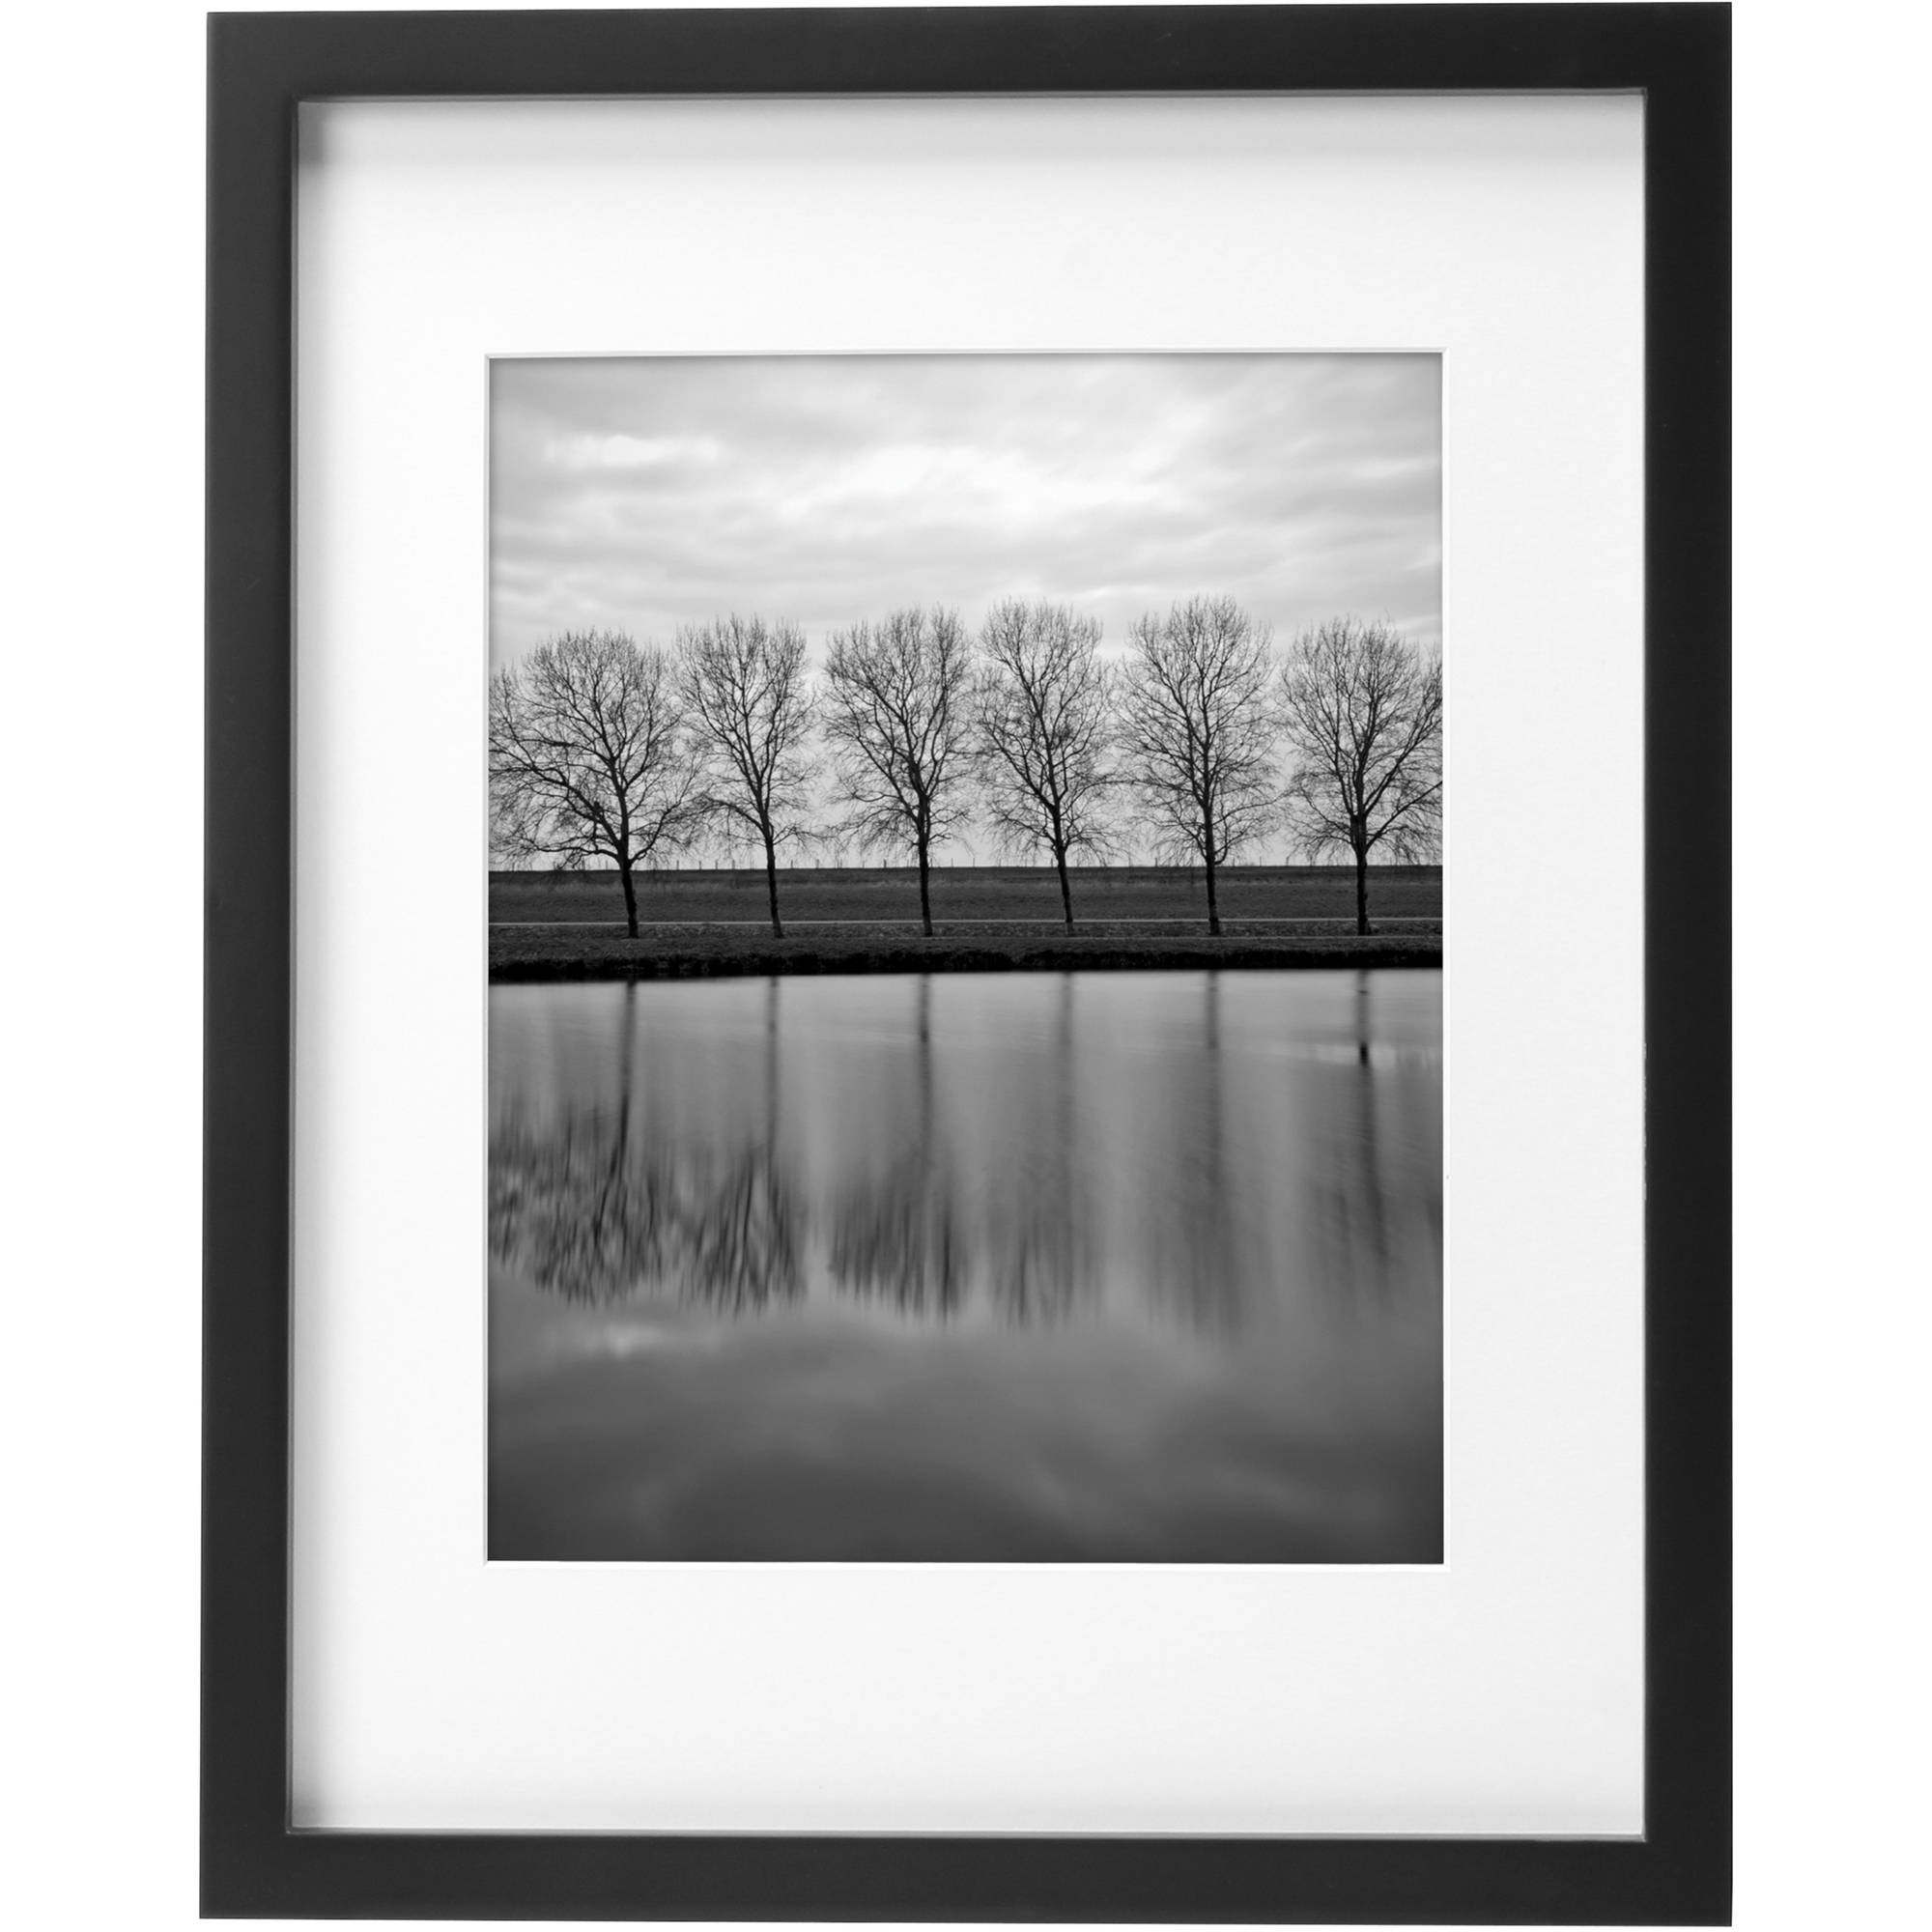 "Better Homes and Gardens Gallery Picture Frame 11"" x 14"", Matted to 8"" x 10"" Images"